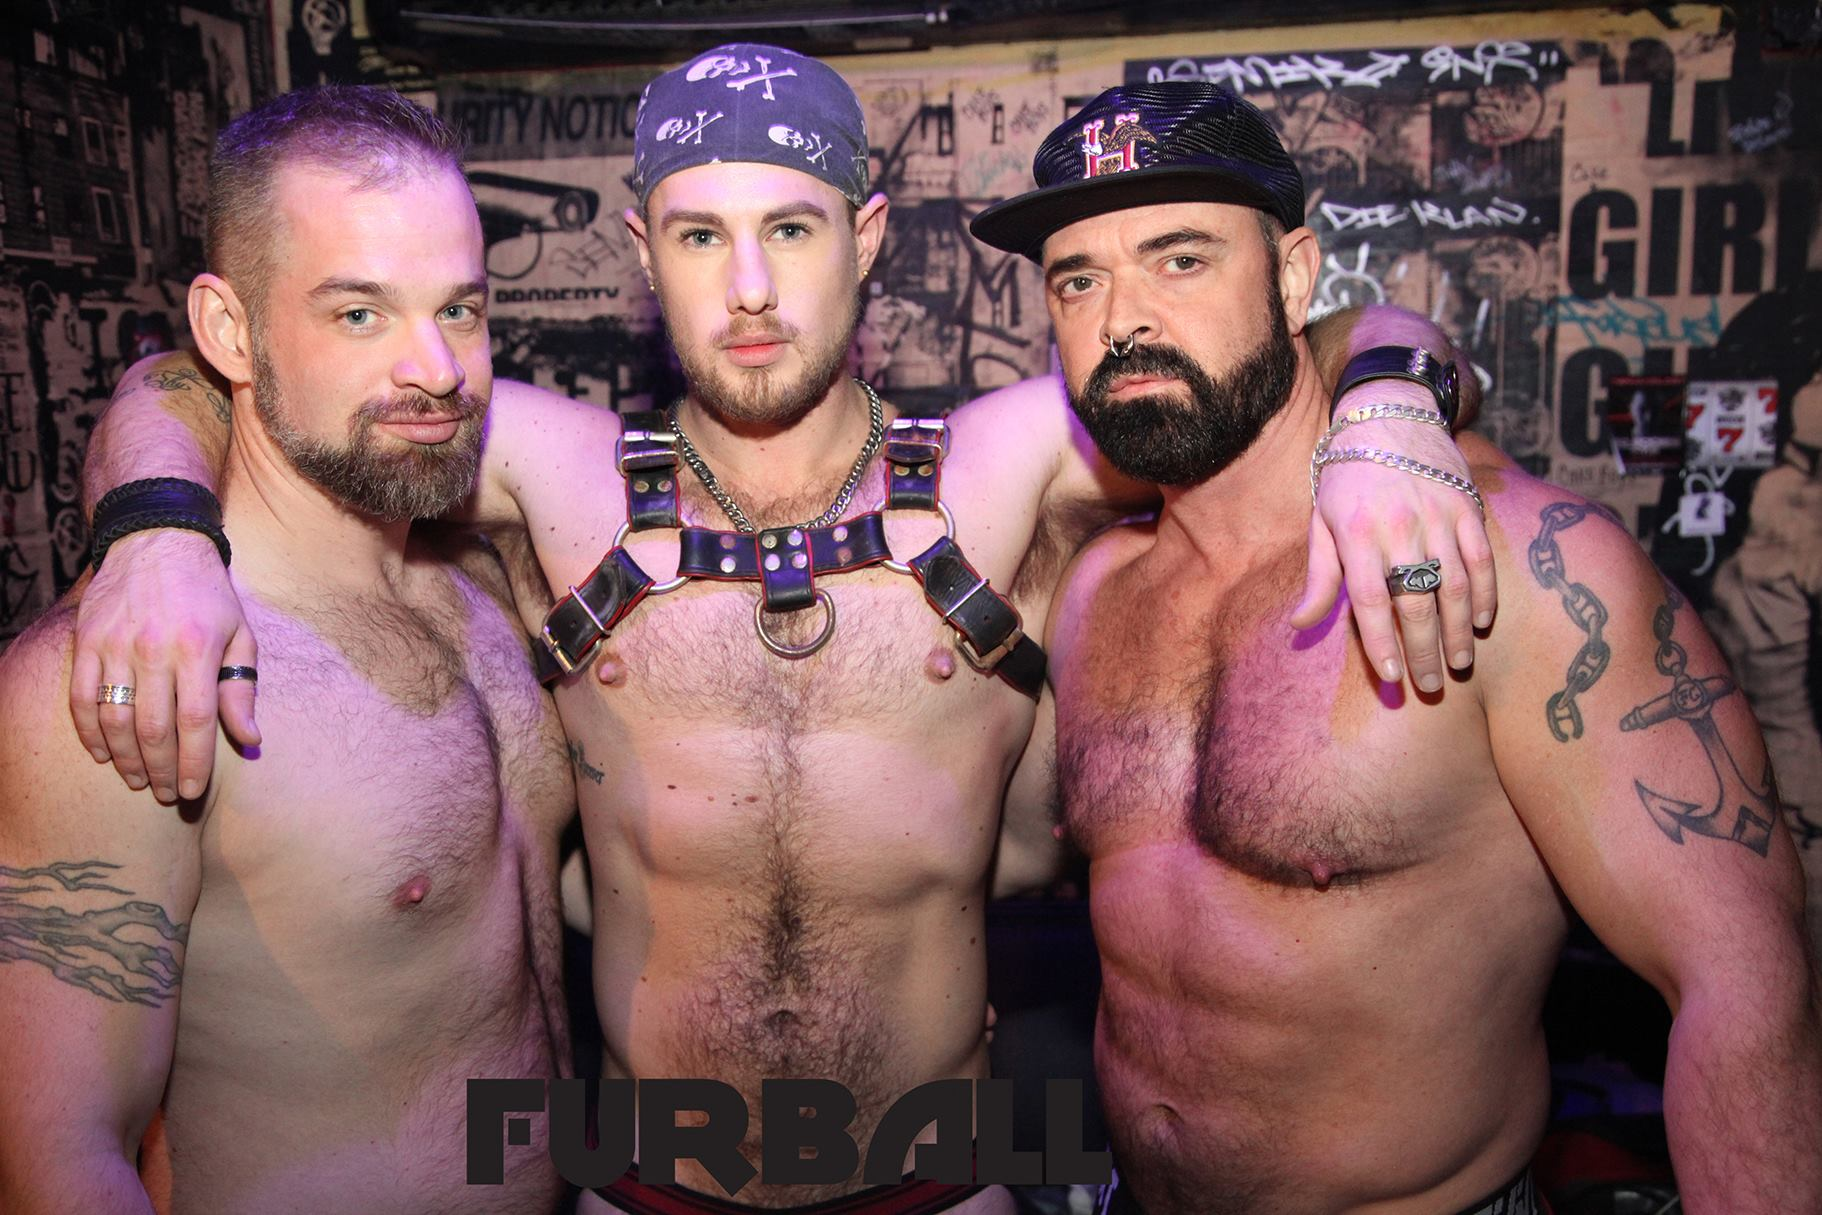 Cristoph's Tampa gay bar